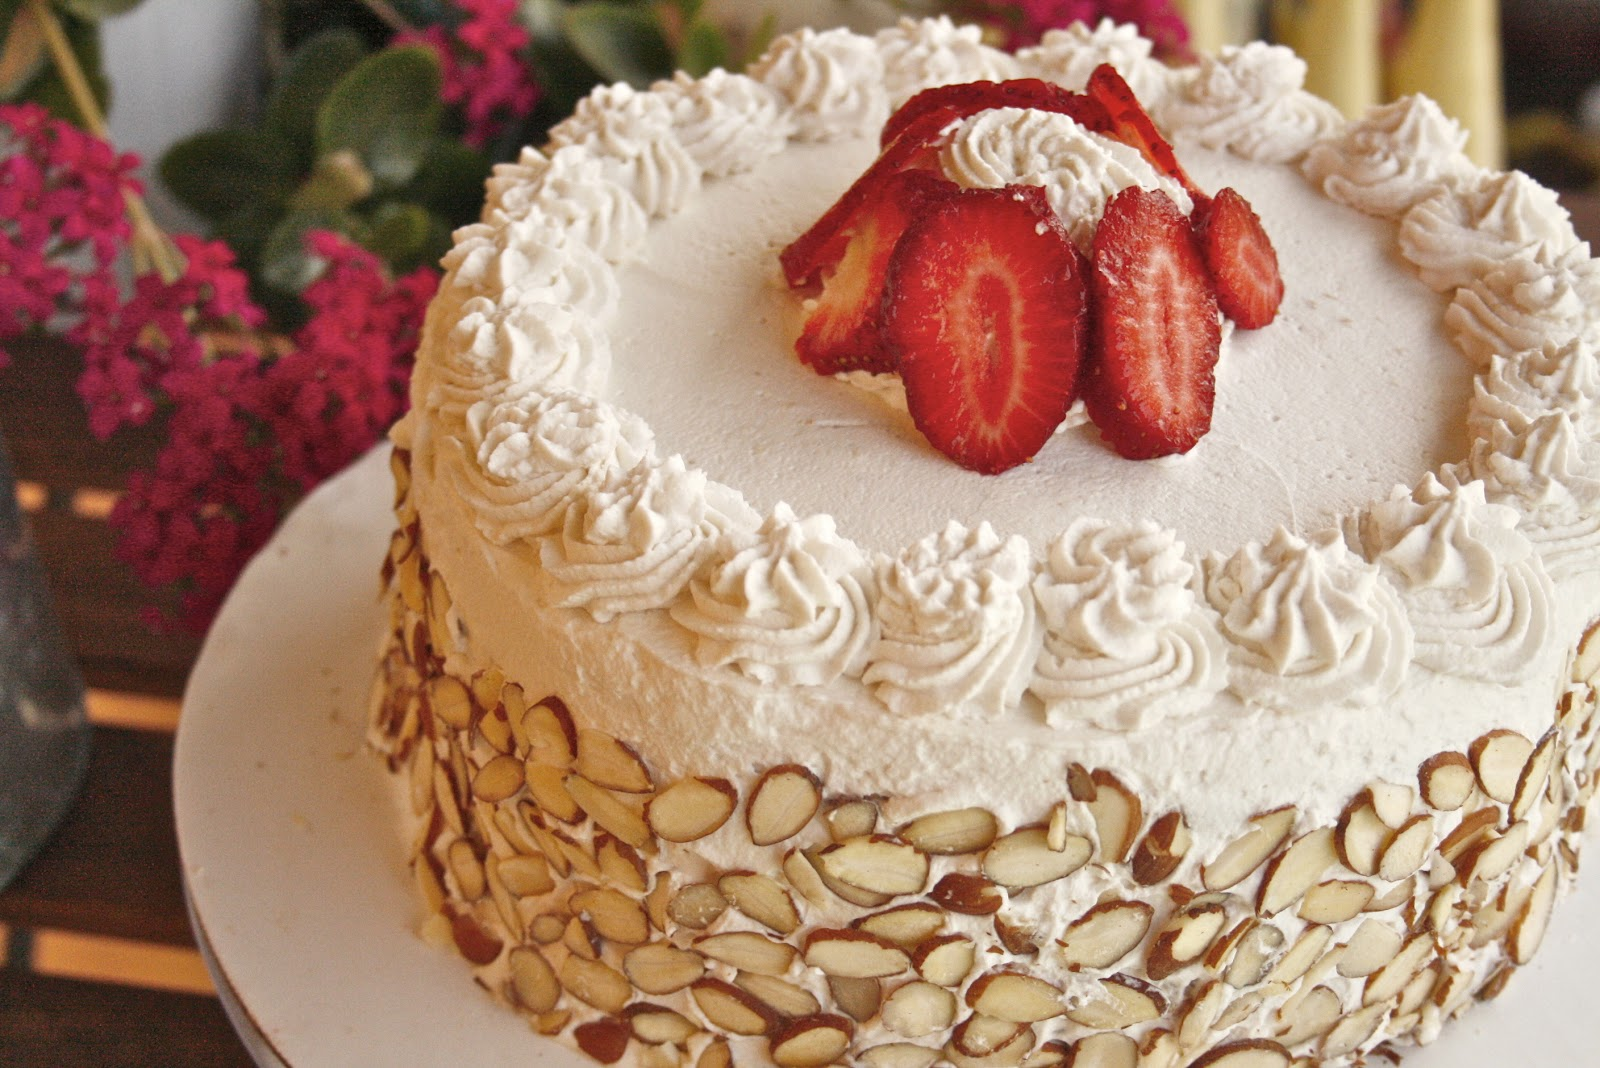 Italian Cake Recipes With Pictures: Miri In The Village » Outcakes #2